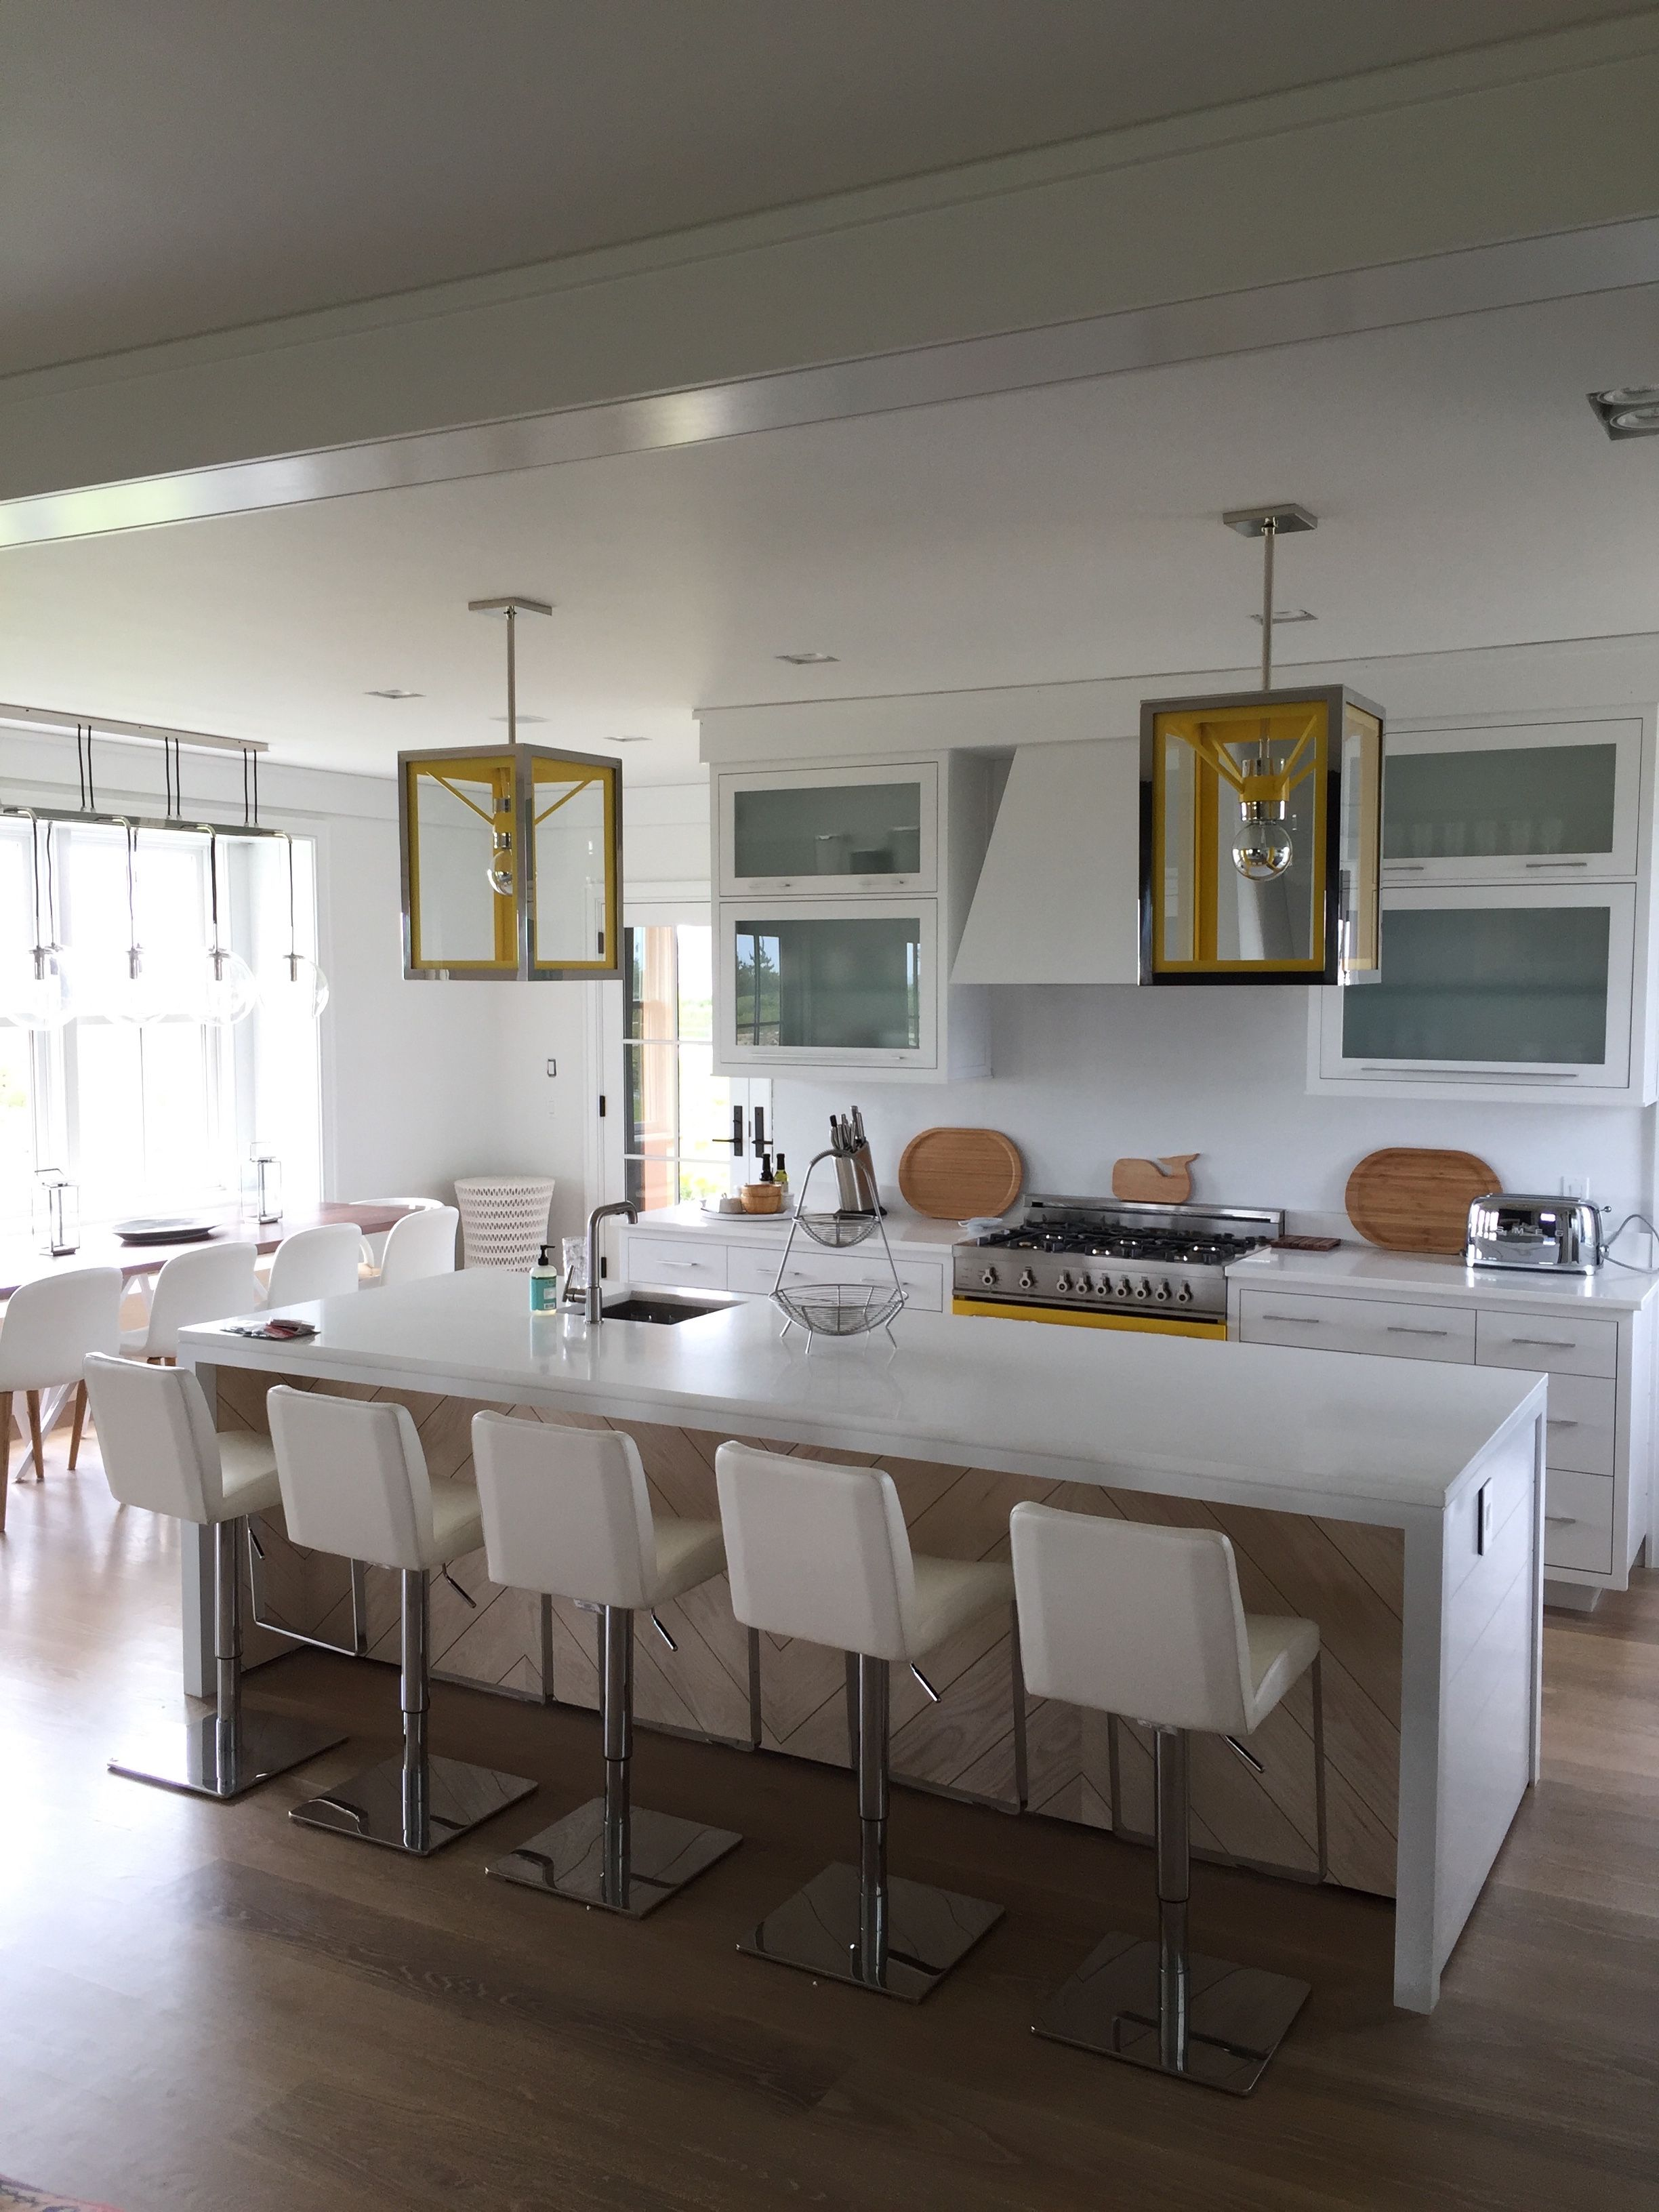 Nantucket white kitchen,with yellow accents   Cocinas